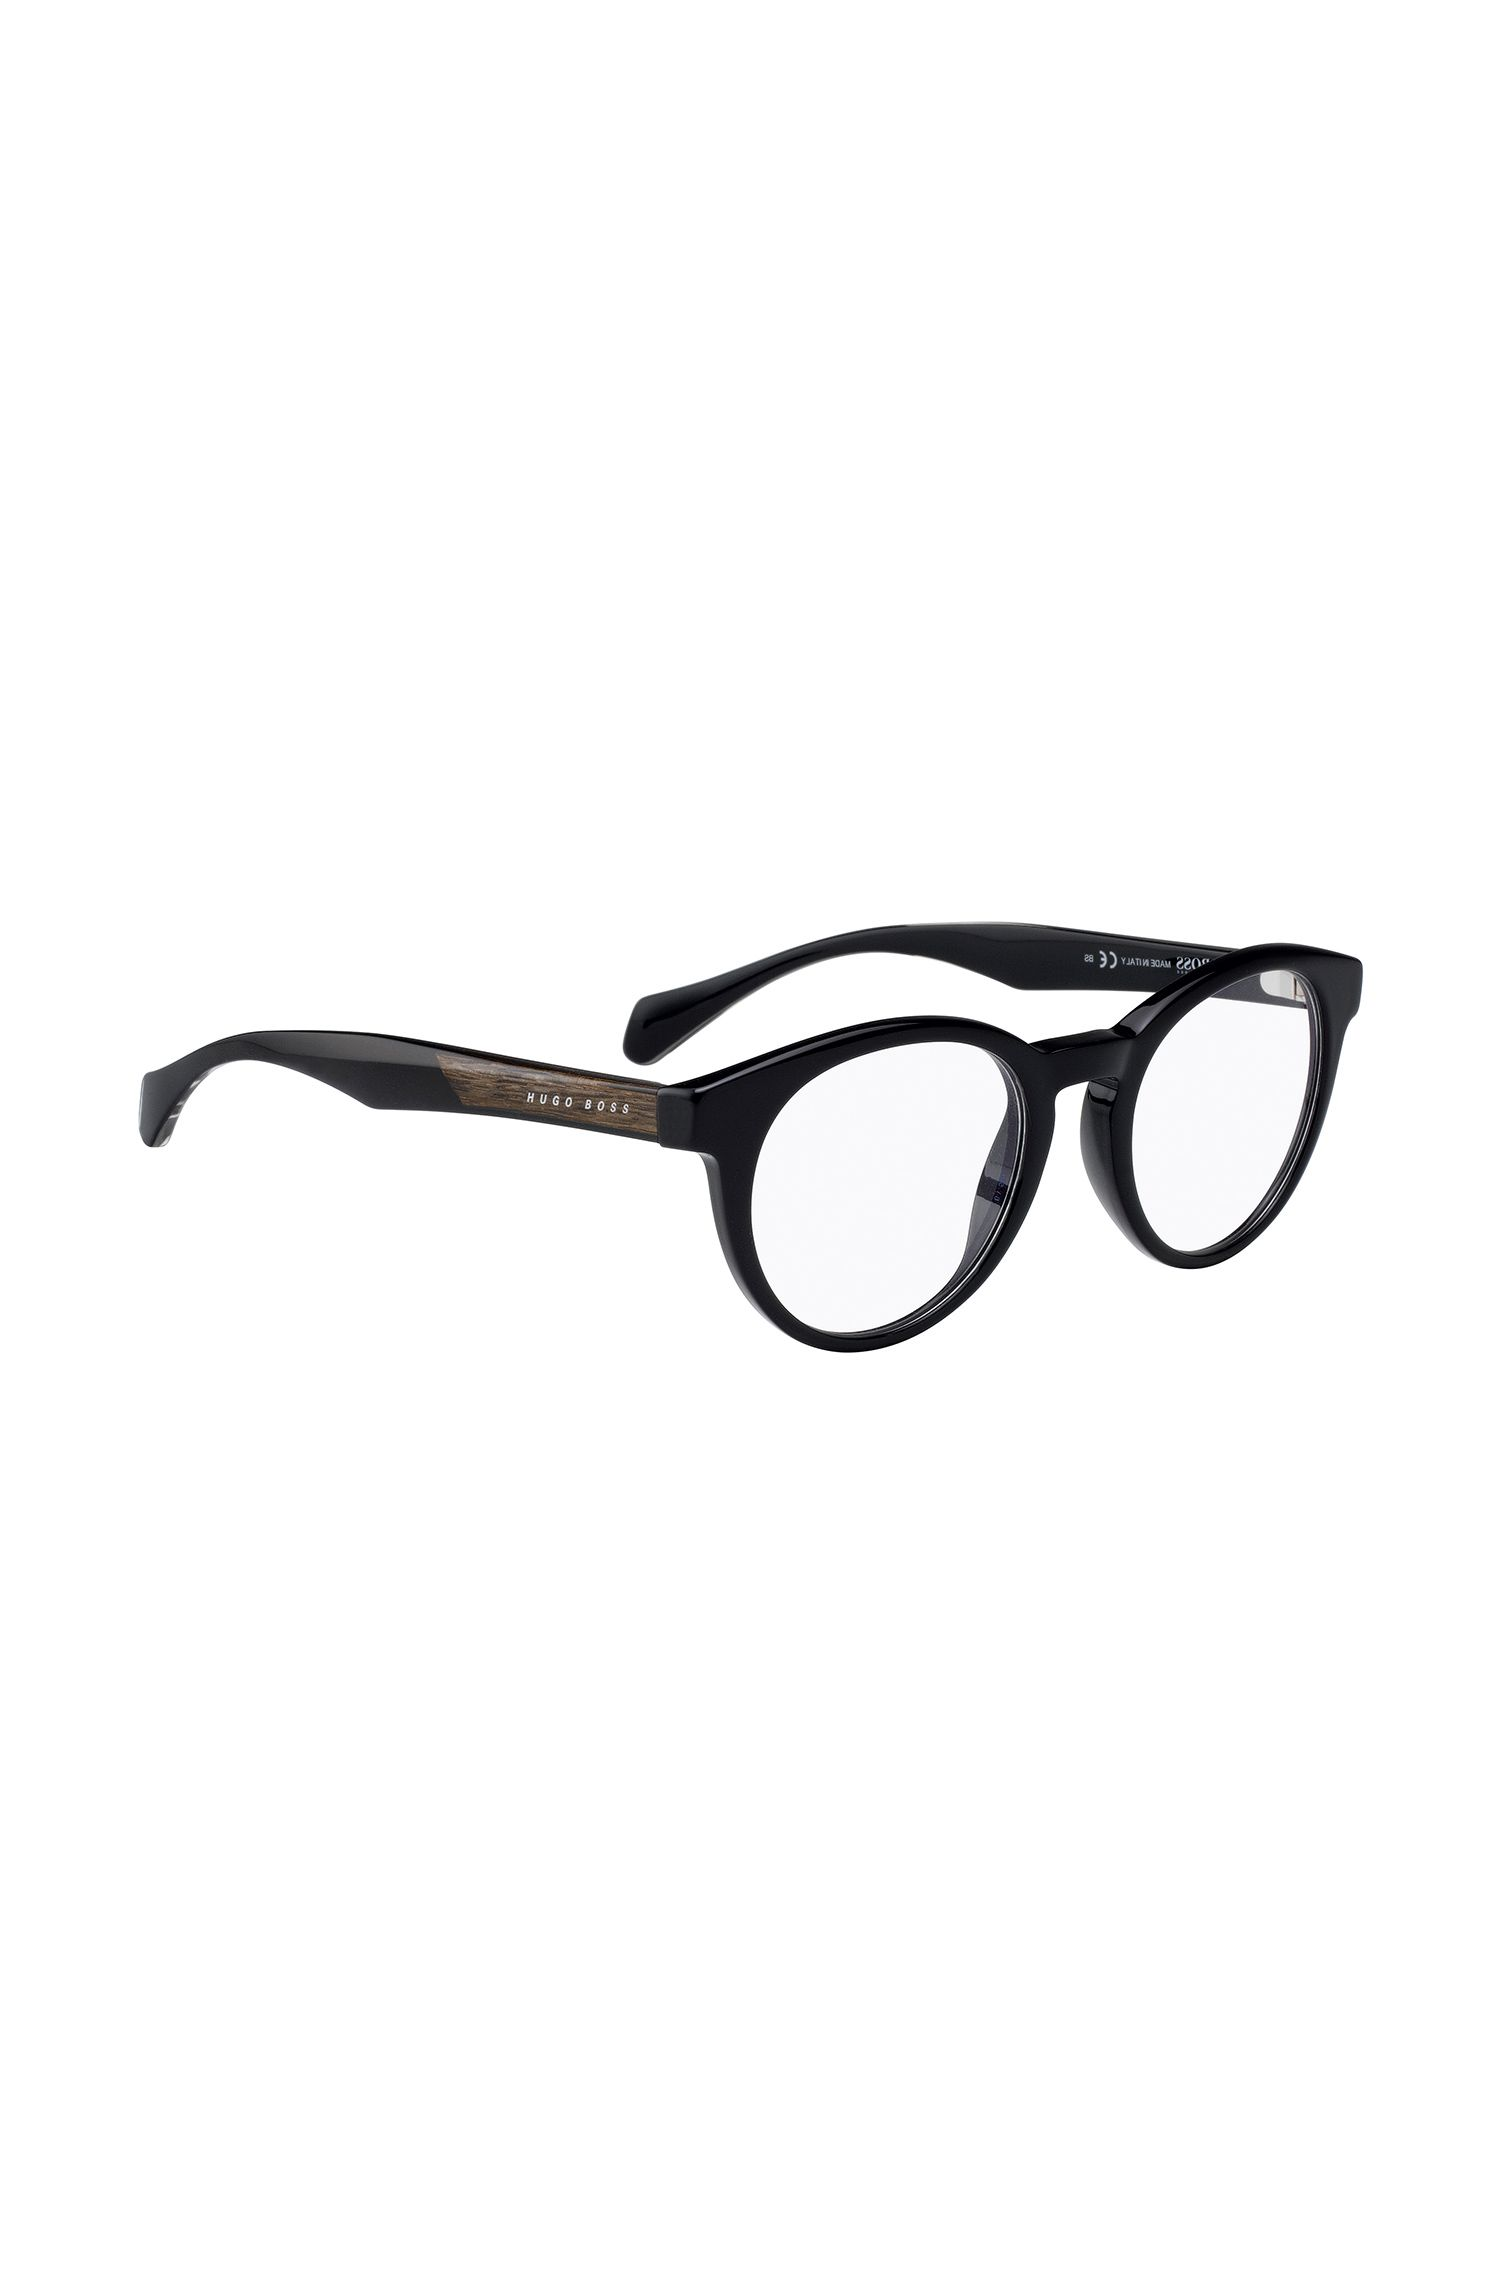 'BOSS 0913 1YS' | Black Acetate Round Optical Frames